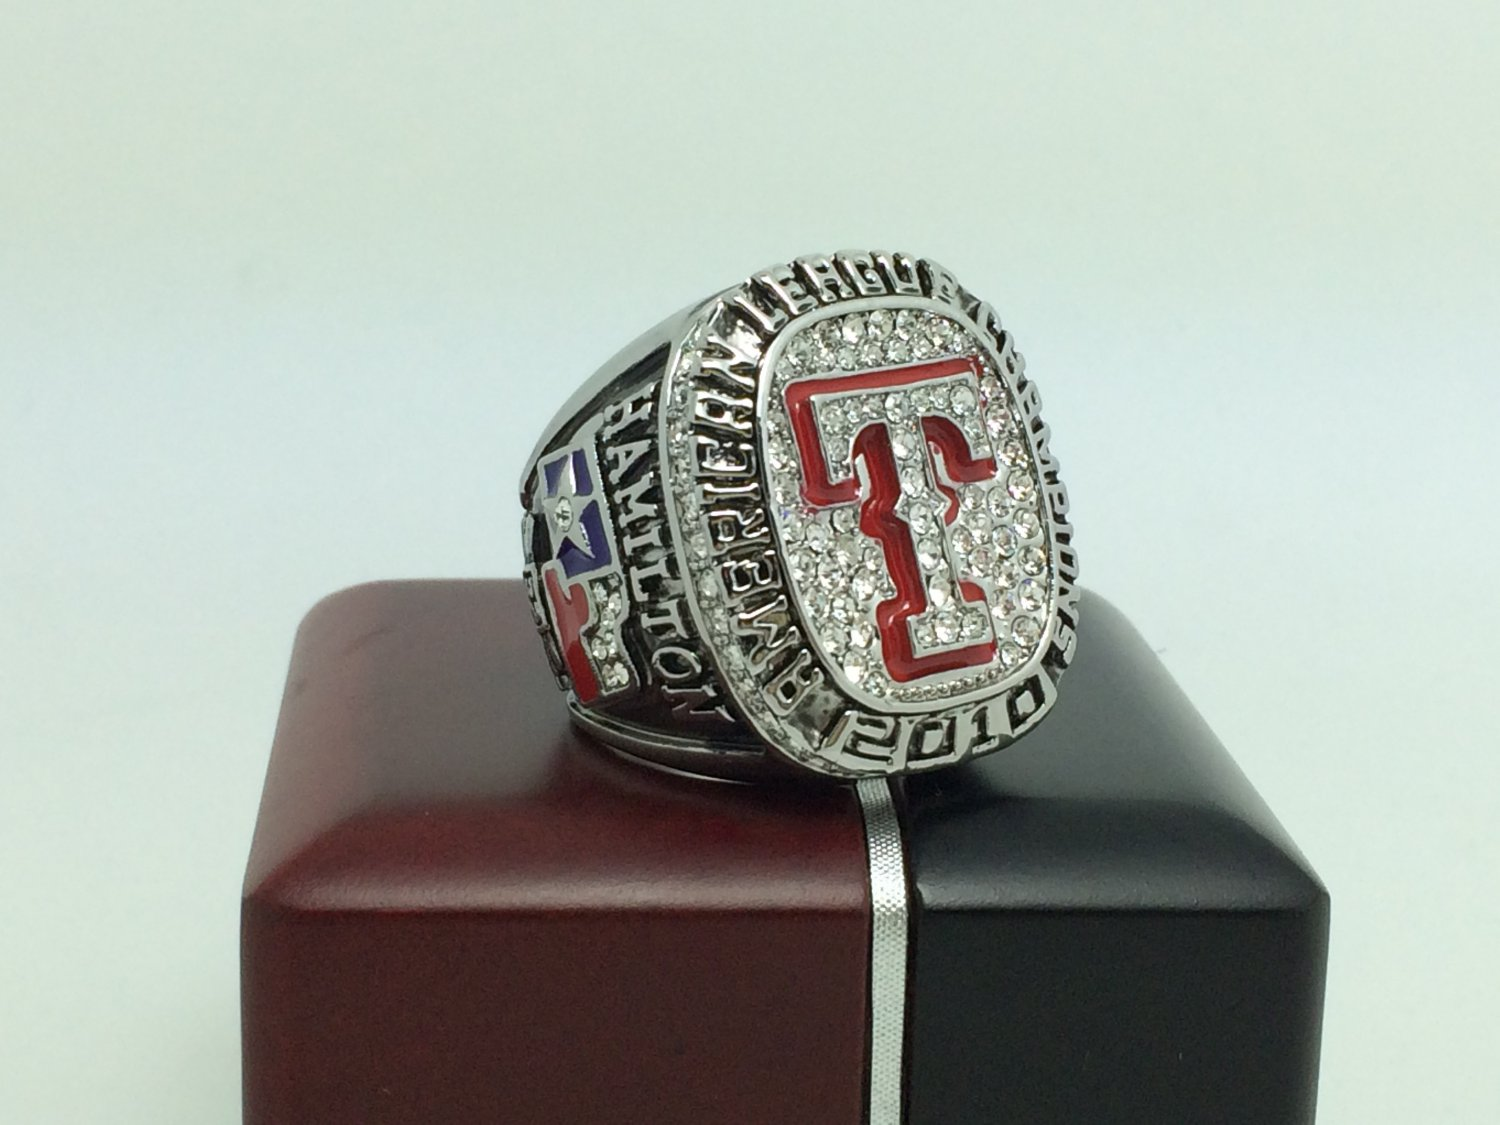 2010 TEXAS RANGERS American League Baseball Championship Ring 11 Size With wooden box